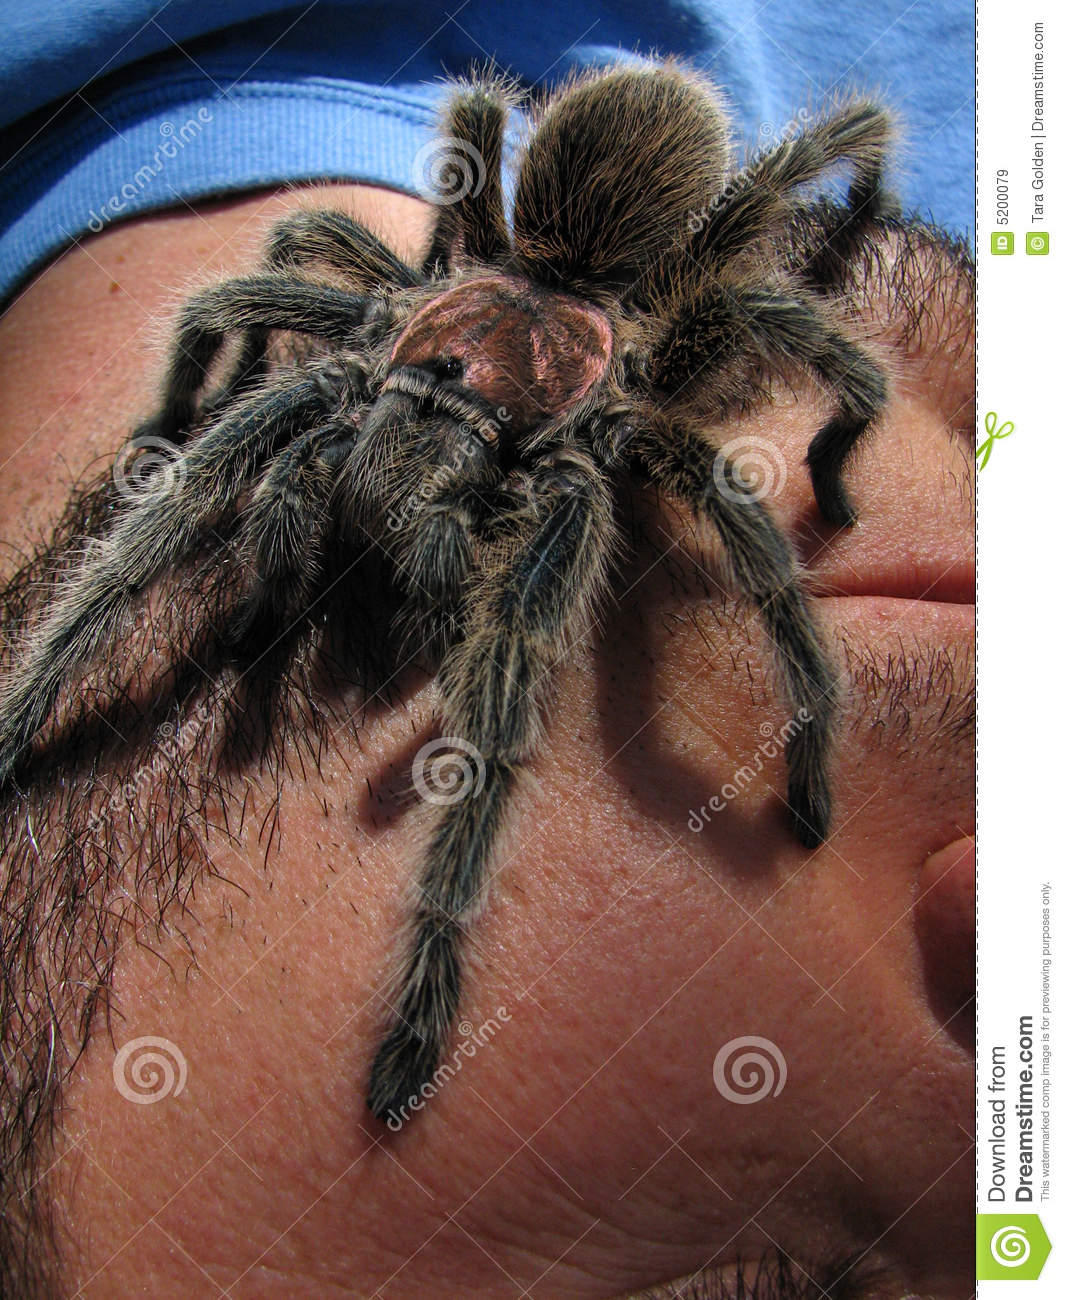 Rose Hair Tarantula On Face Stock Image Image Of Bite Insect 5200079